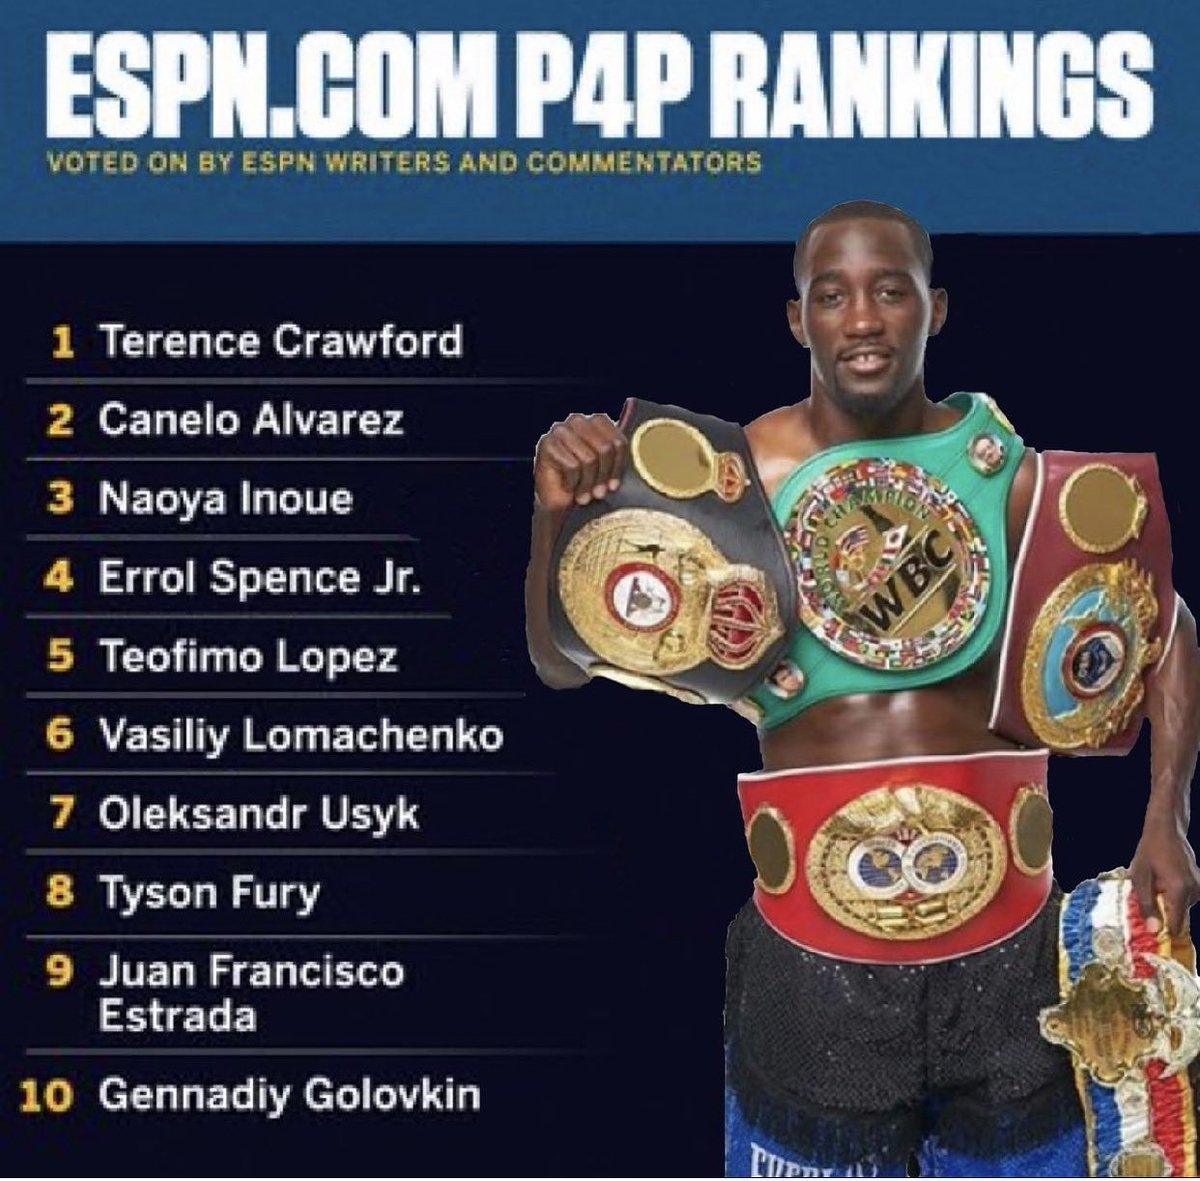 ESPN updated there Pound 4 Pound list No 154 lbs King Jermell Charlo and No Unified Light Heavyweight Champion Artur Beterbiev. SMH I dropped GGG and Juan Francisco Estrada off my list to make room. #fighthooknews #jcalderonboxingtalk #espnboxing https://t.co/2oDGldQrIS